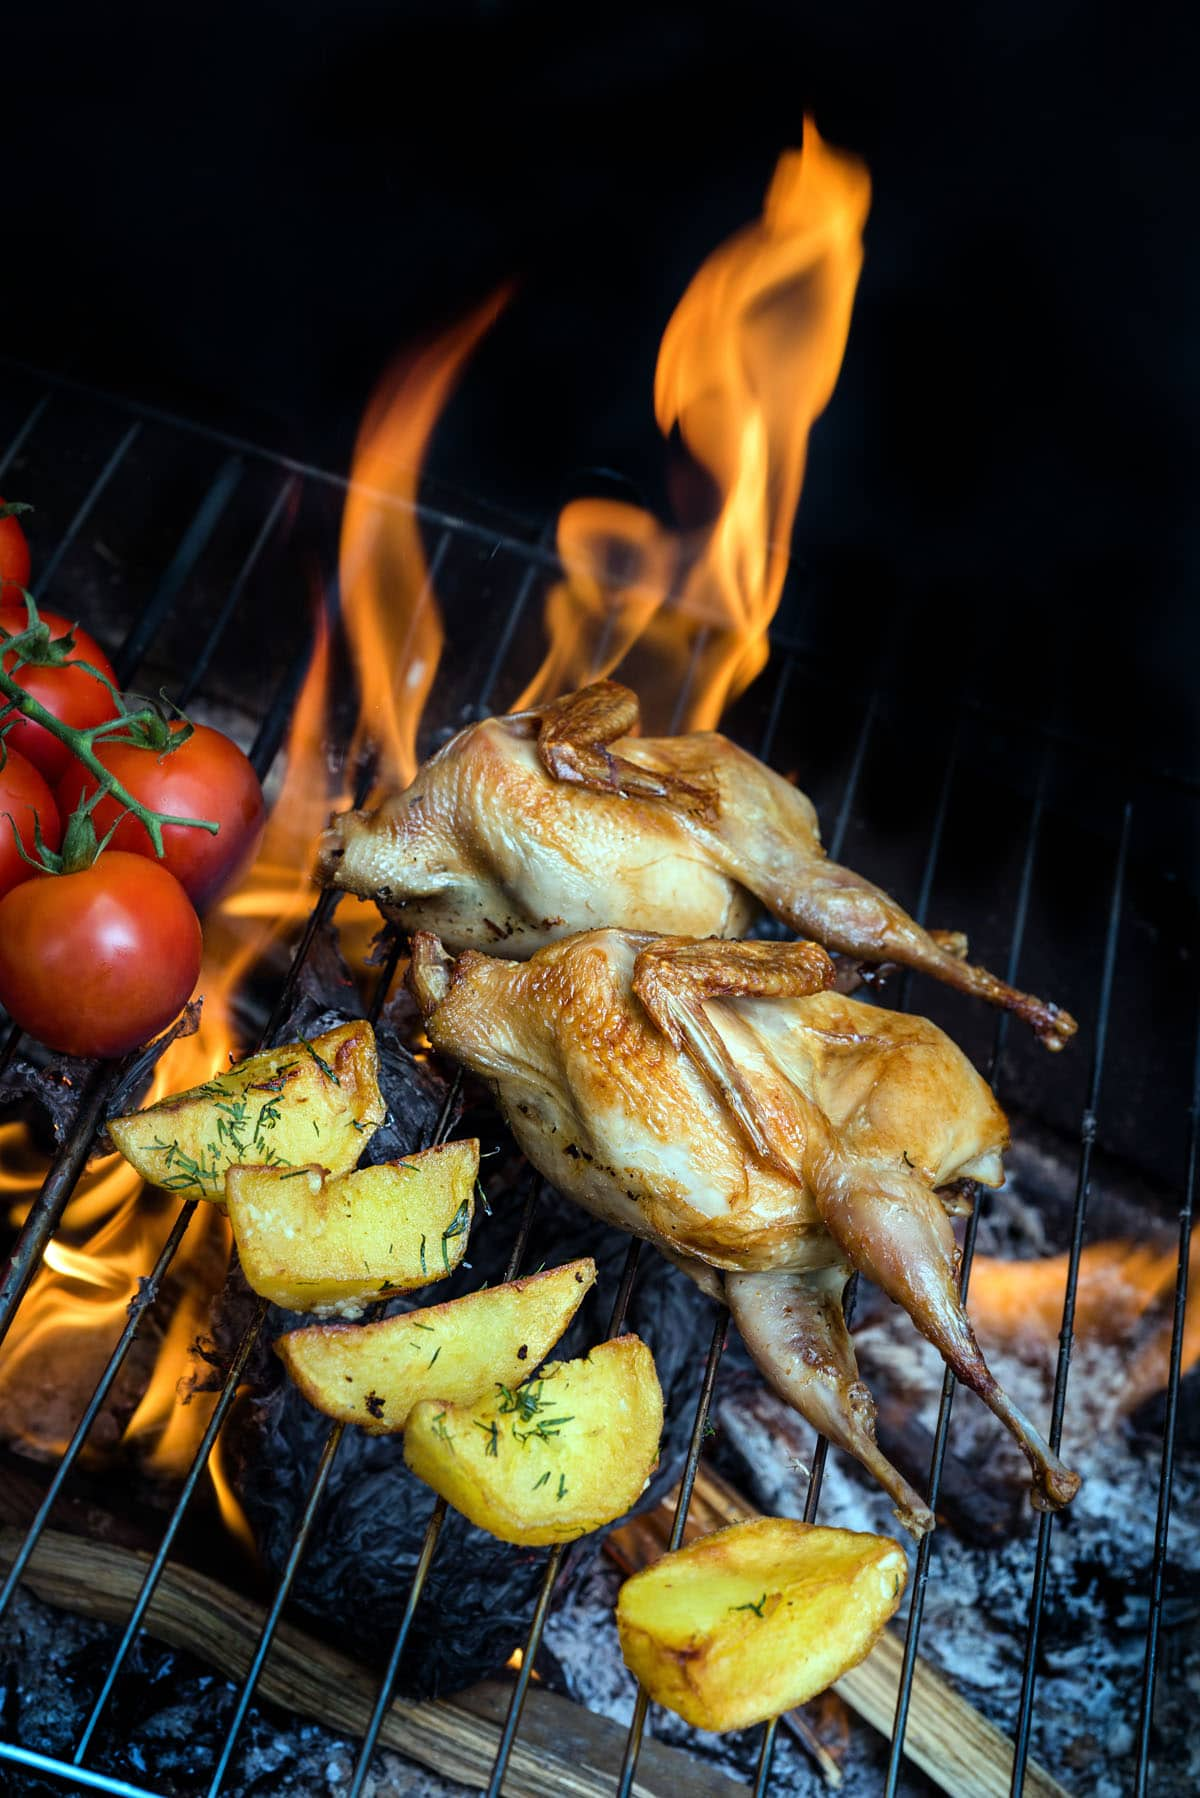 grilling poultry quails and fresh juicy vegetables